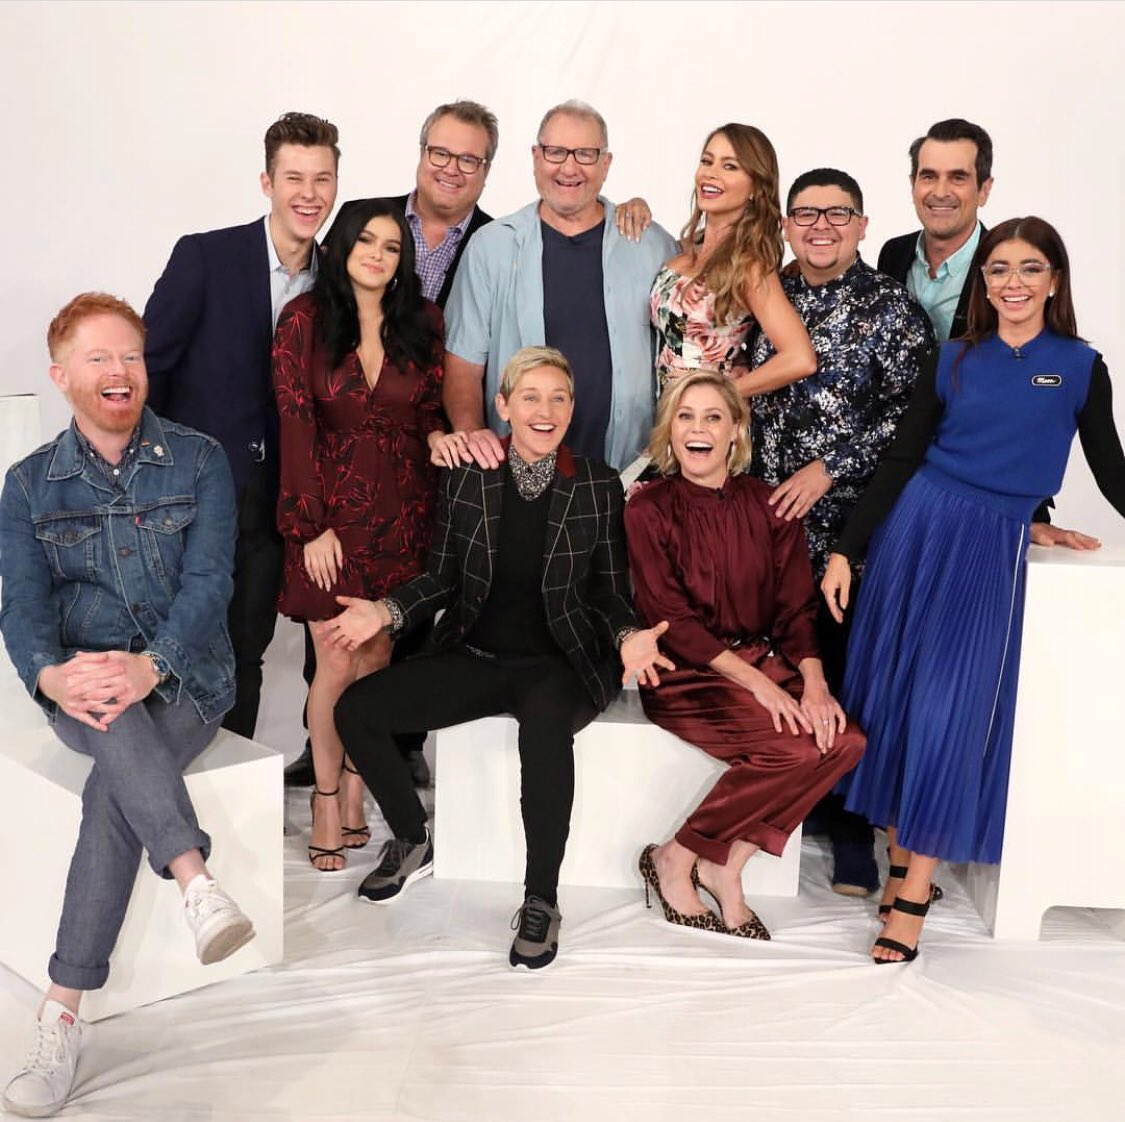 Me and a few of my friends drop into @TheEllenShow tomorrow! Tune in! Sept 25th #ModernFamily